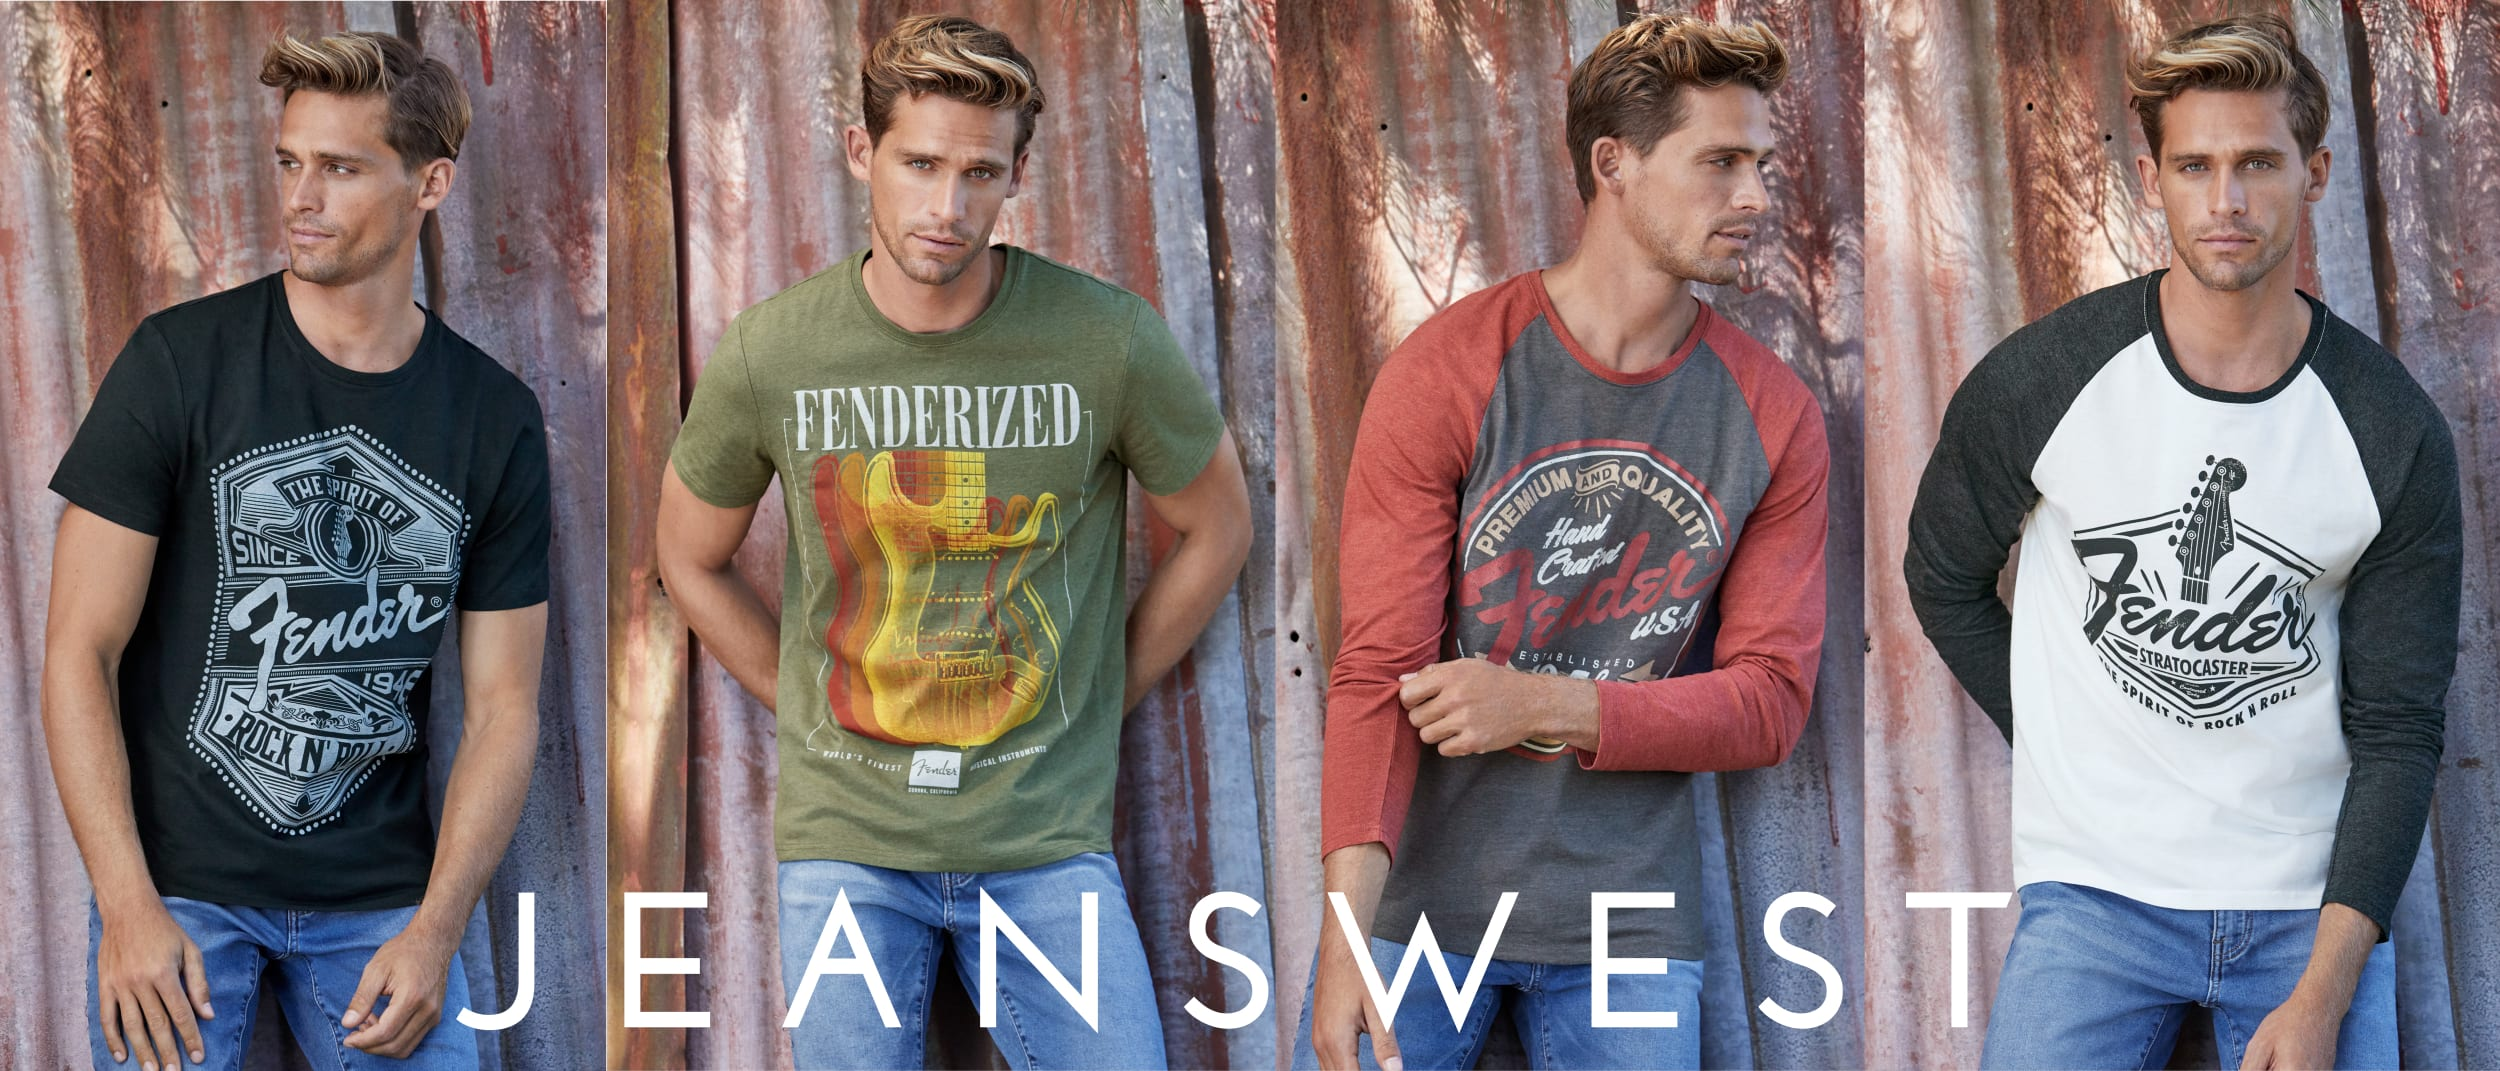 Jeanswest: Fender tees collection